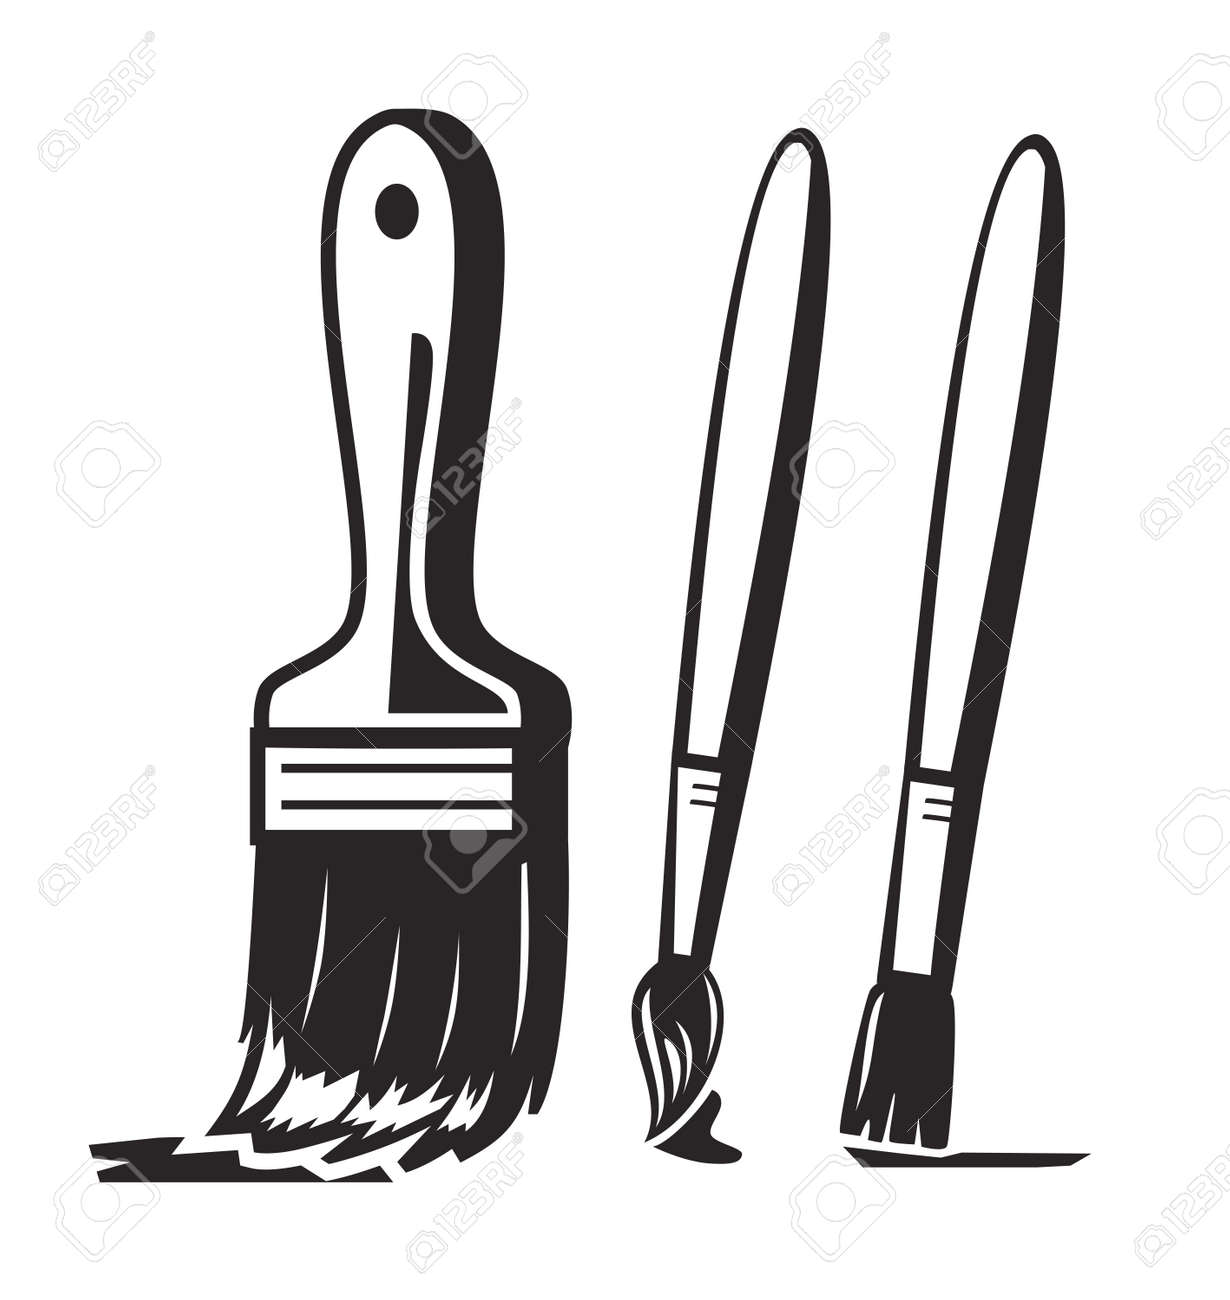 vector black paint brush icon on white background royalty free rh 123rf com vector paint brush stroke paint brush vector illustrator